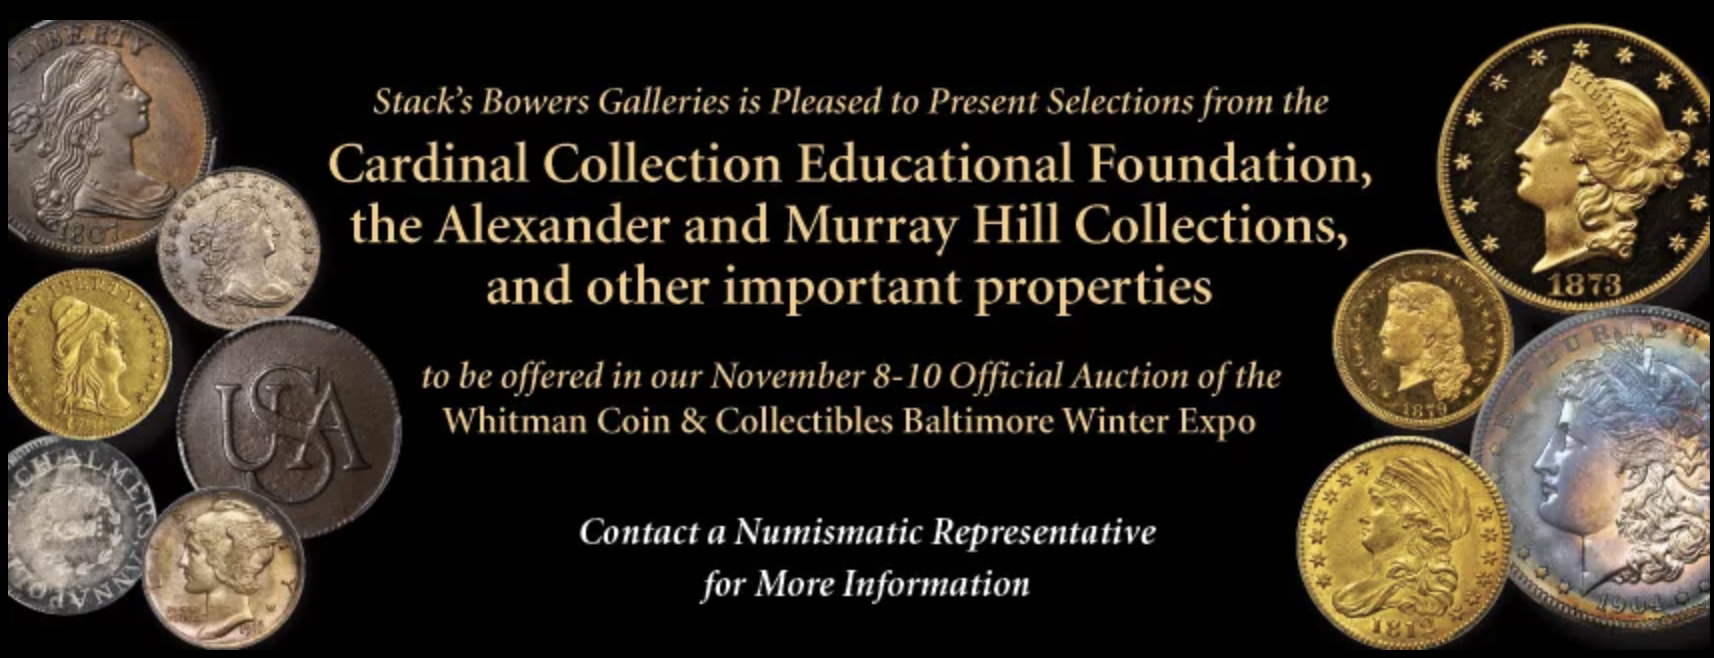 main image for PRESS RELEASE: Exciting Early American Coins and Numismatic Americana to Highlight the Stack's Bowers Galleries Official Auction of the November 2017 Whitman Coins & Collectibles Baltimore Expo